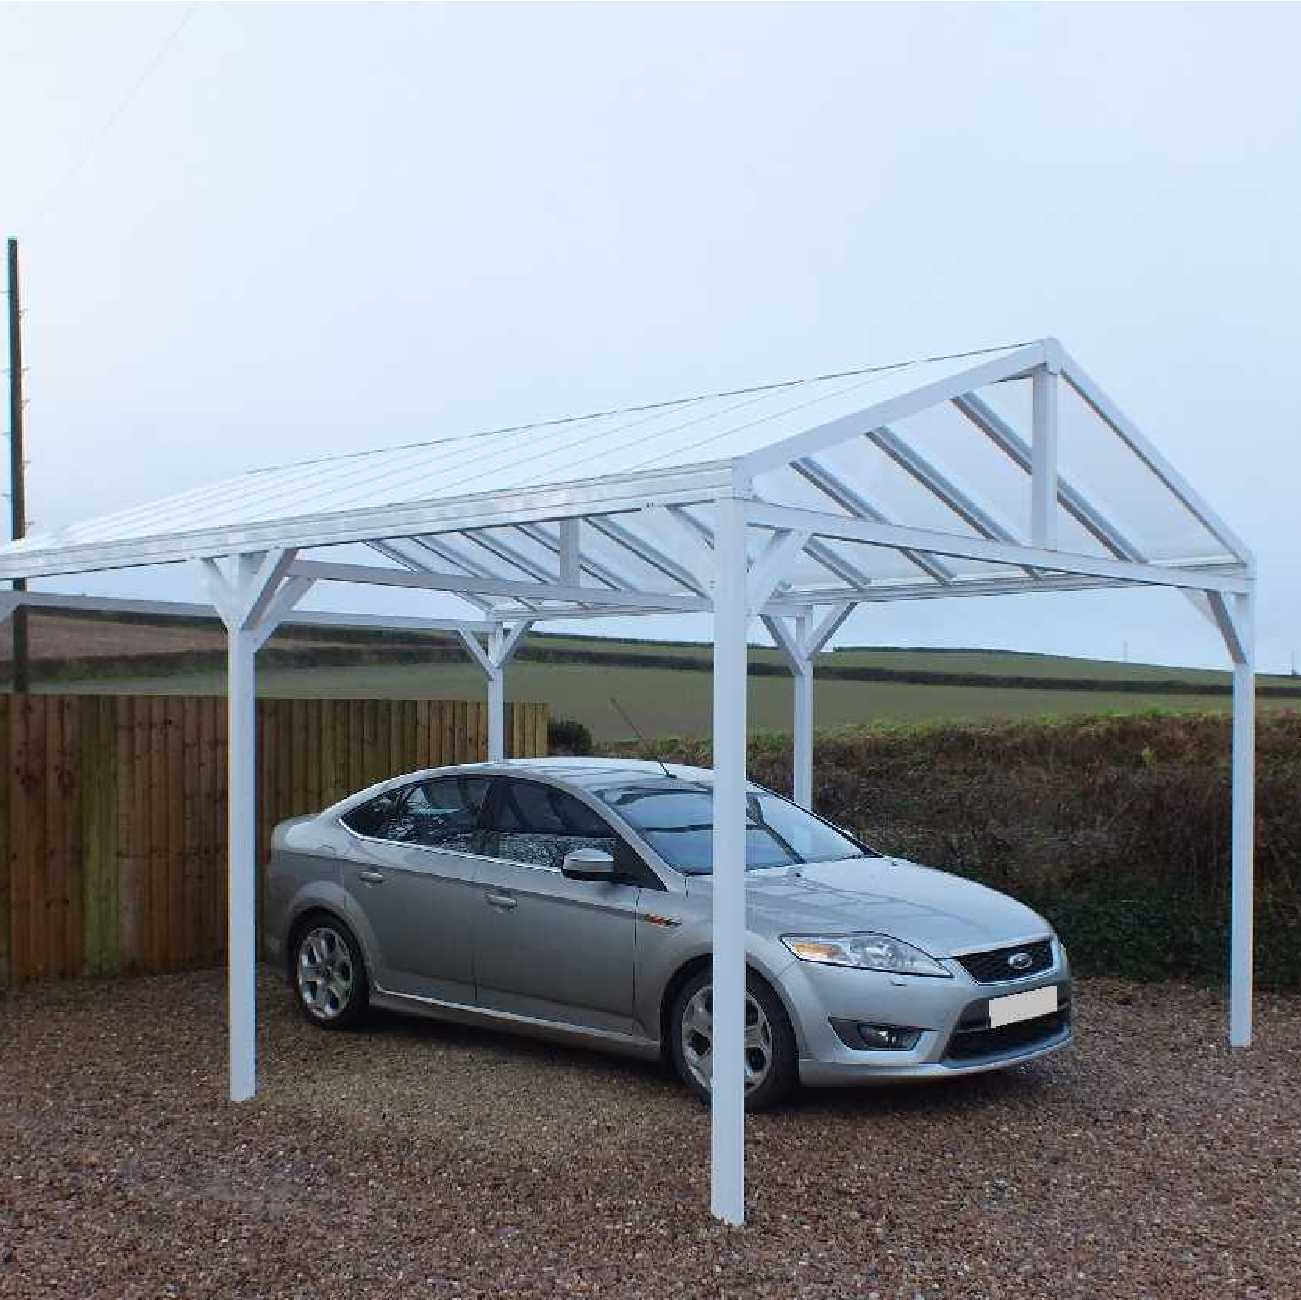 Affordable Omega Smart Free-Standing, Gable-Roof (type 1) Canopy with 16mm Polycarbonate Glazing - 5.2m (W) x 3.5m (P), (6) Supporting Posts